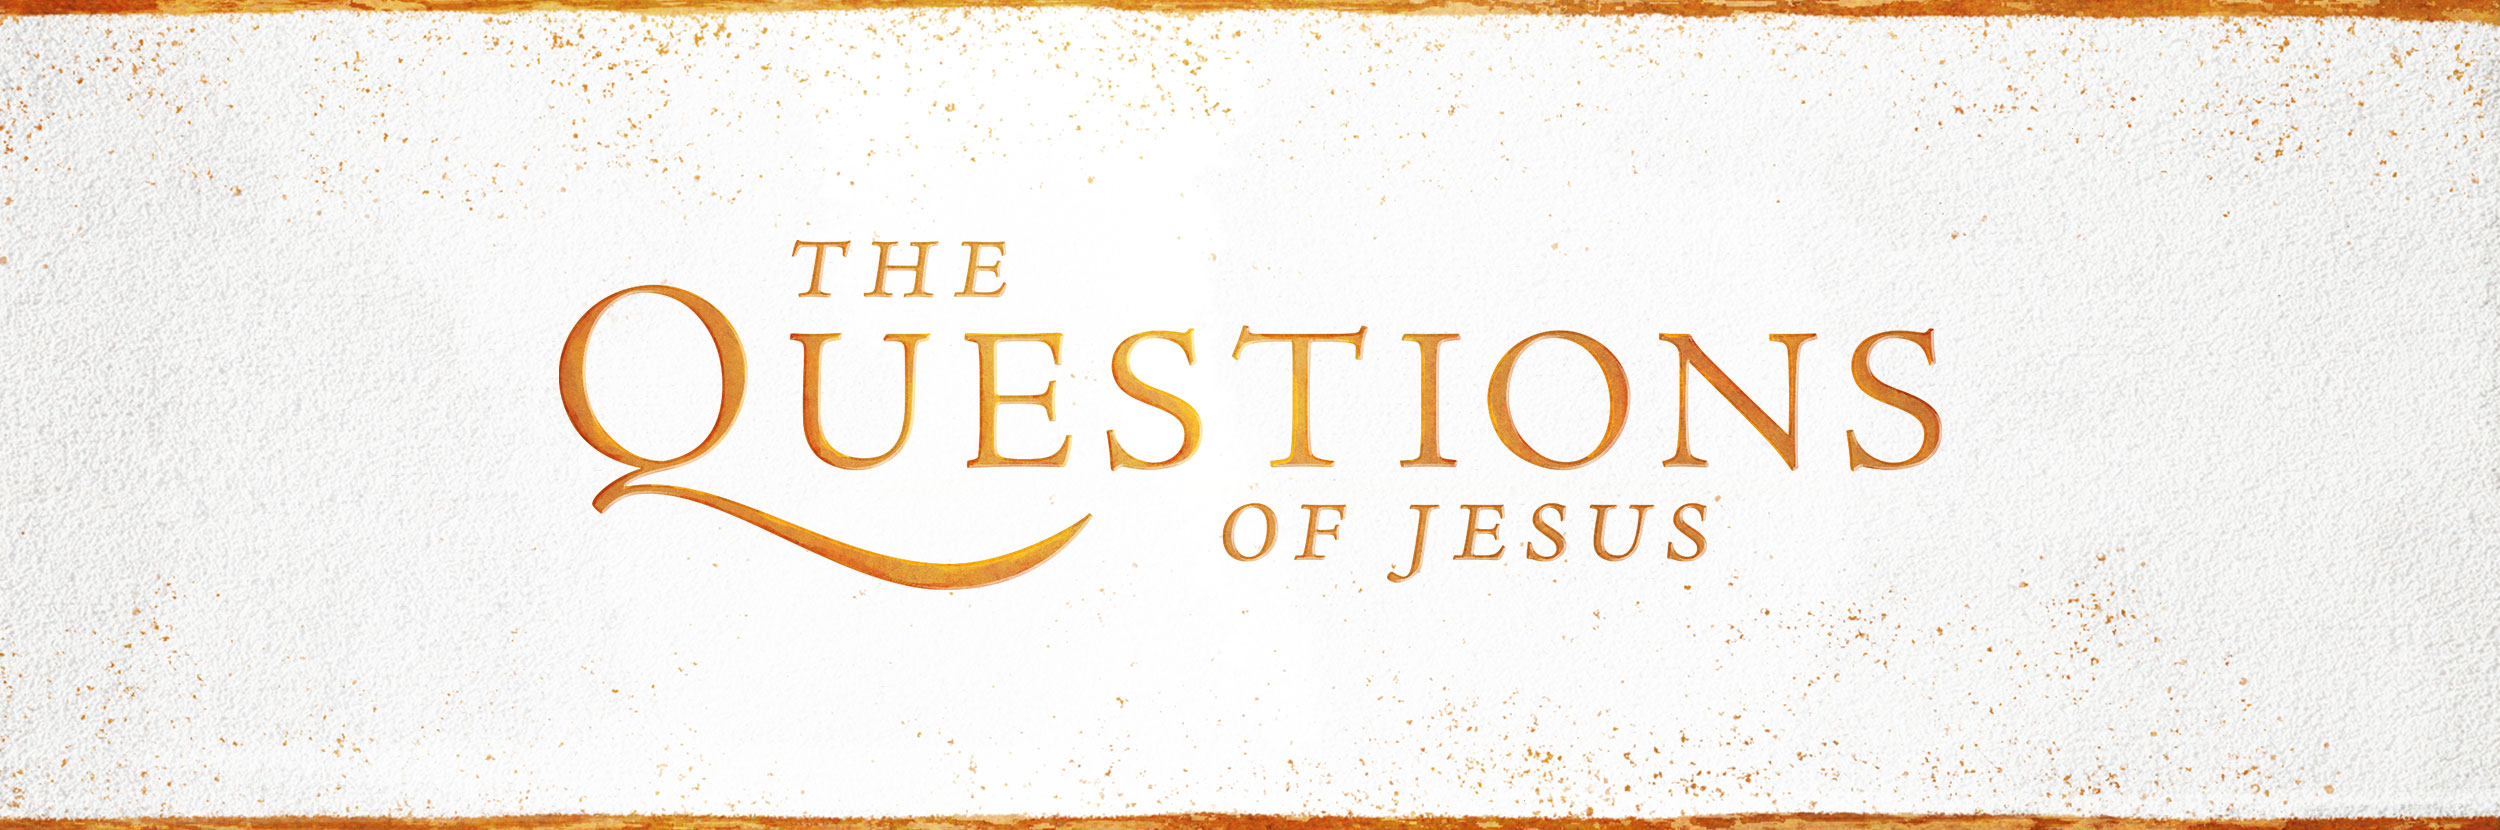 the-questions-of-jesus-easter-banner-2500x830.jpg